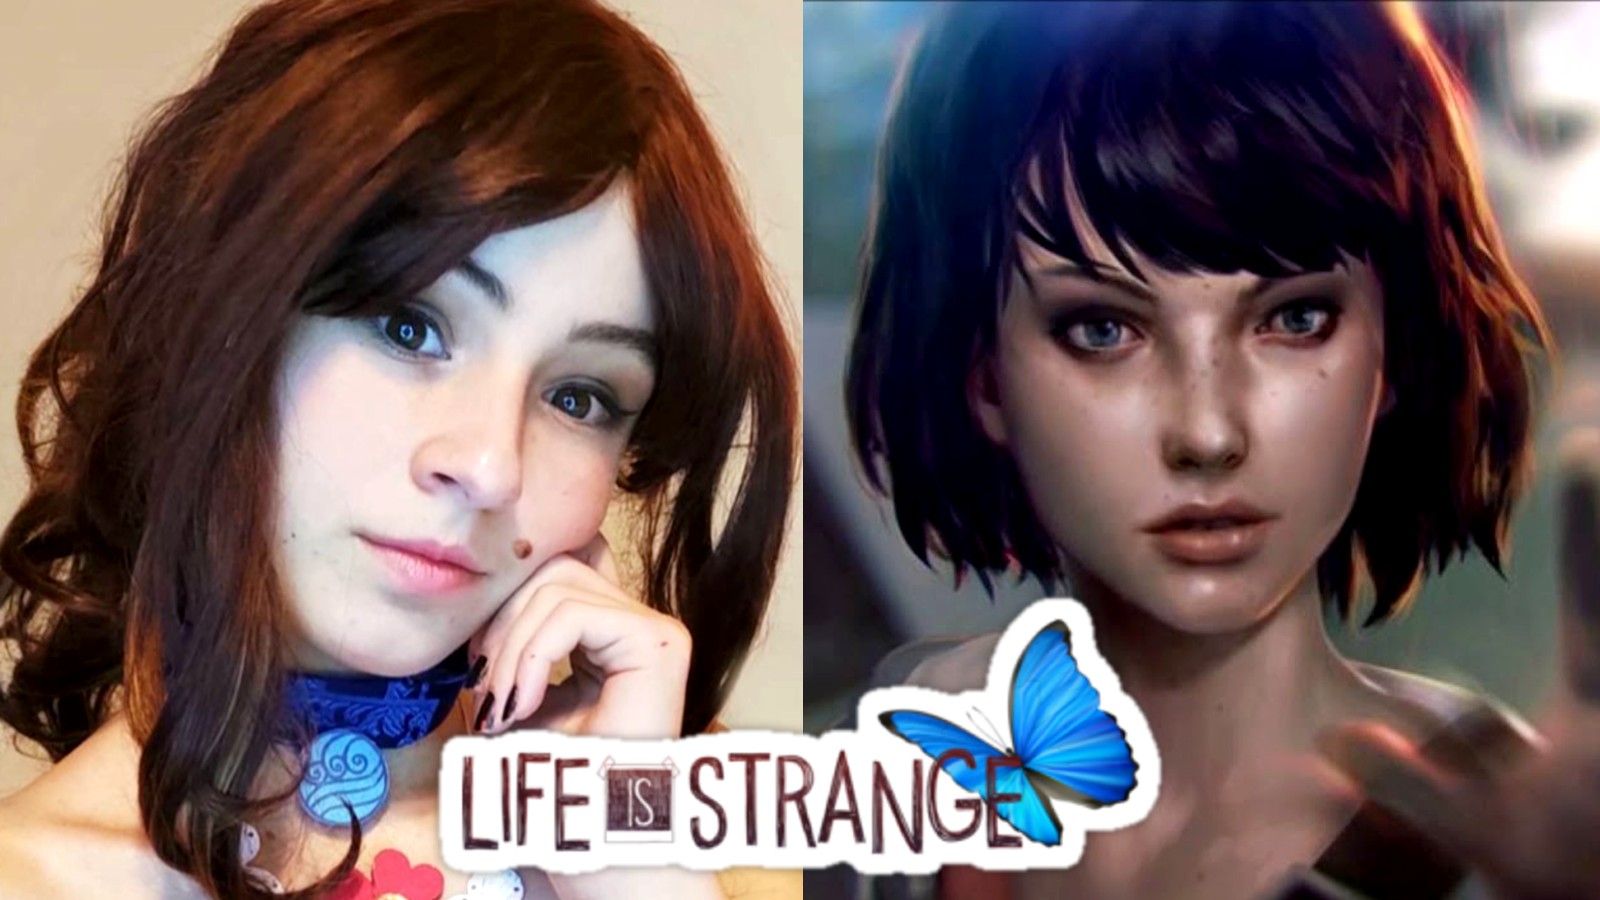 Cosplayer alexya.cos next to Max Caulfield from Life is Strange with the Life is Strange logo